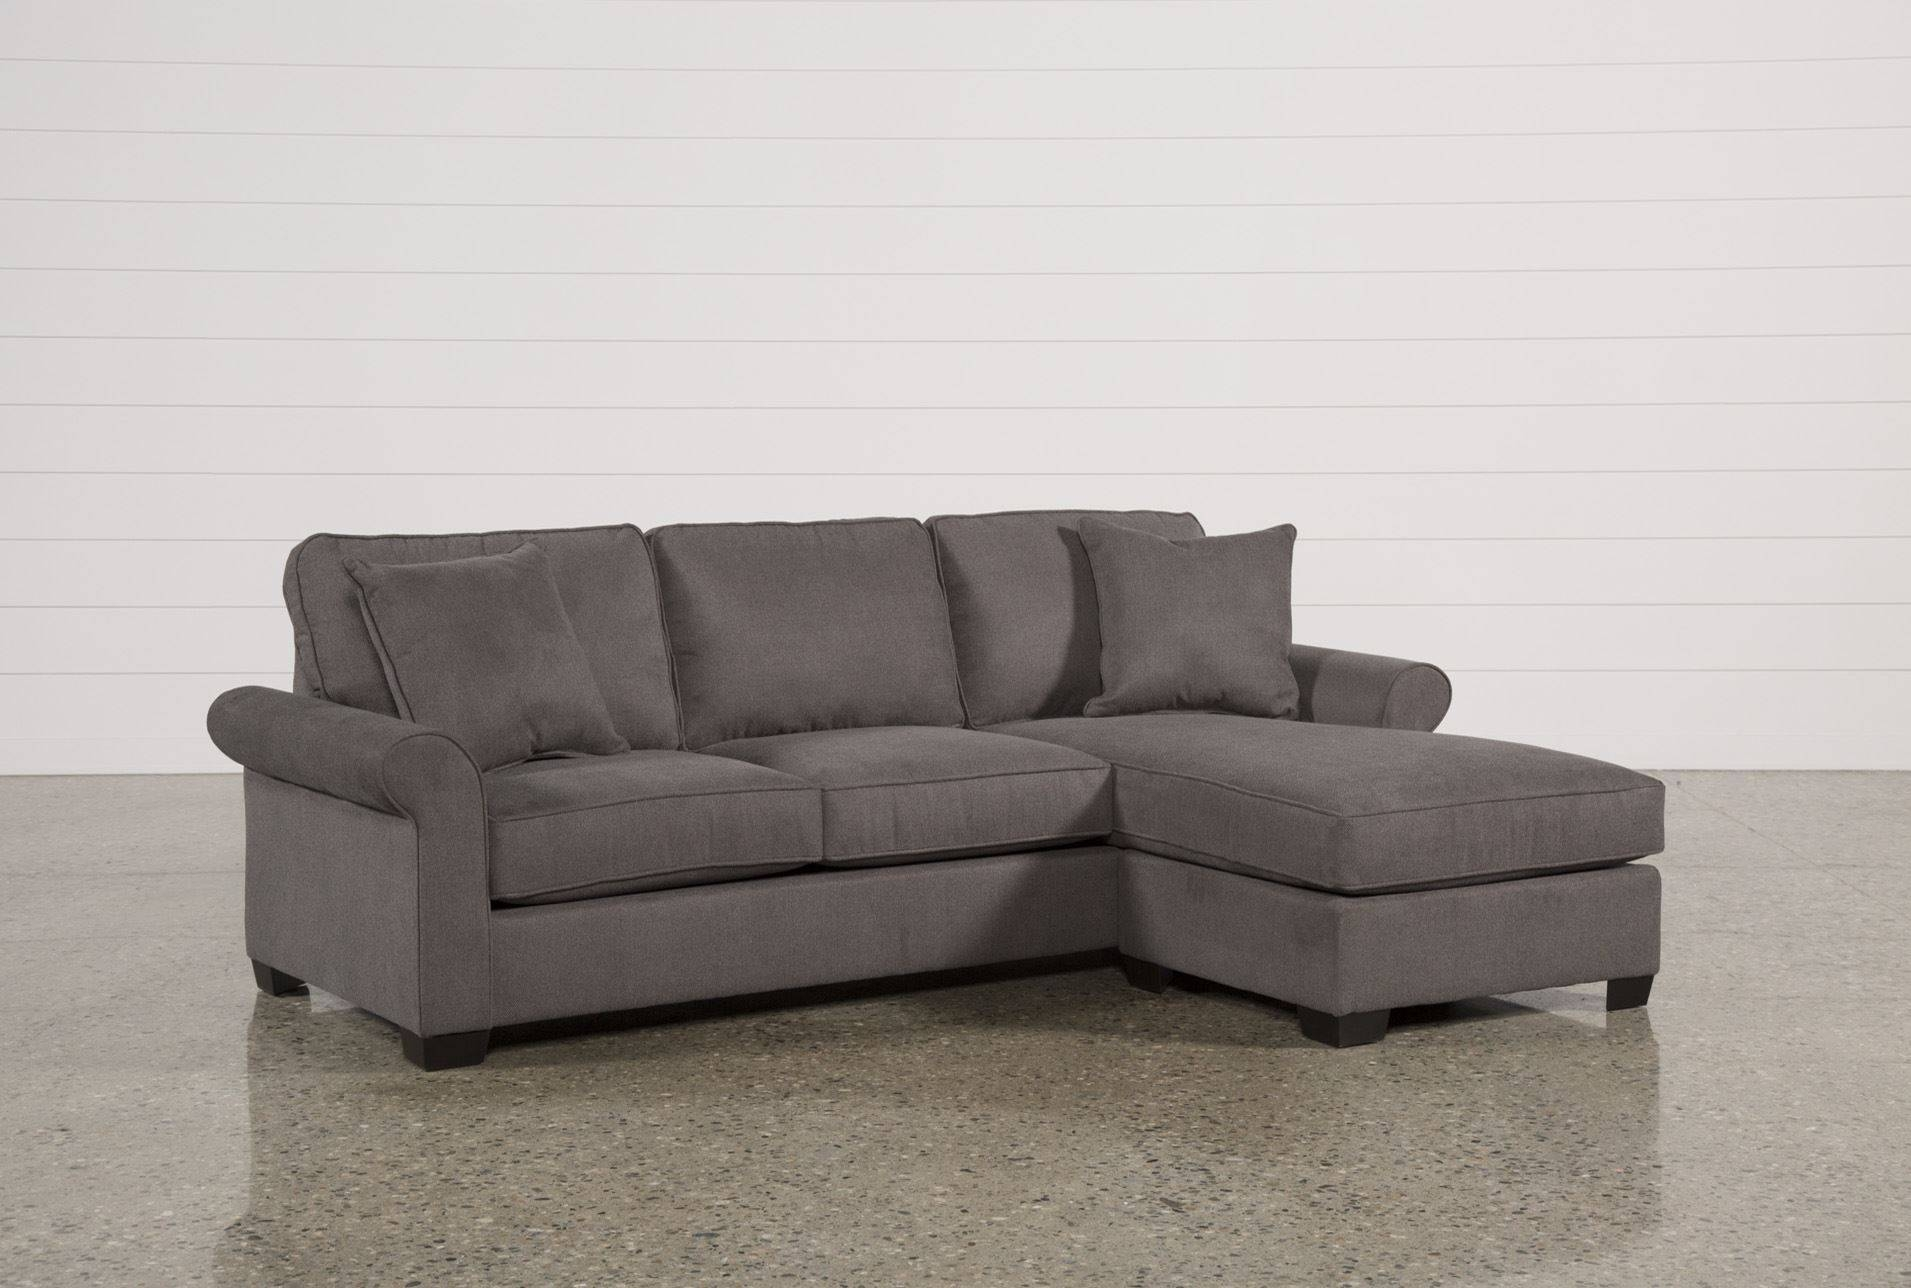 Abbyson Living Bedford Gray Linen Convertible Sleeper Sectional with regard to Abbyson Sectional Sofa (Image 3 of 30)